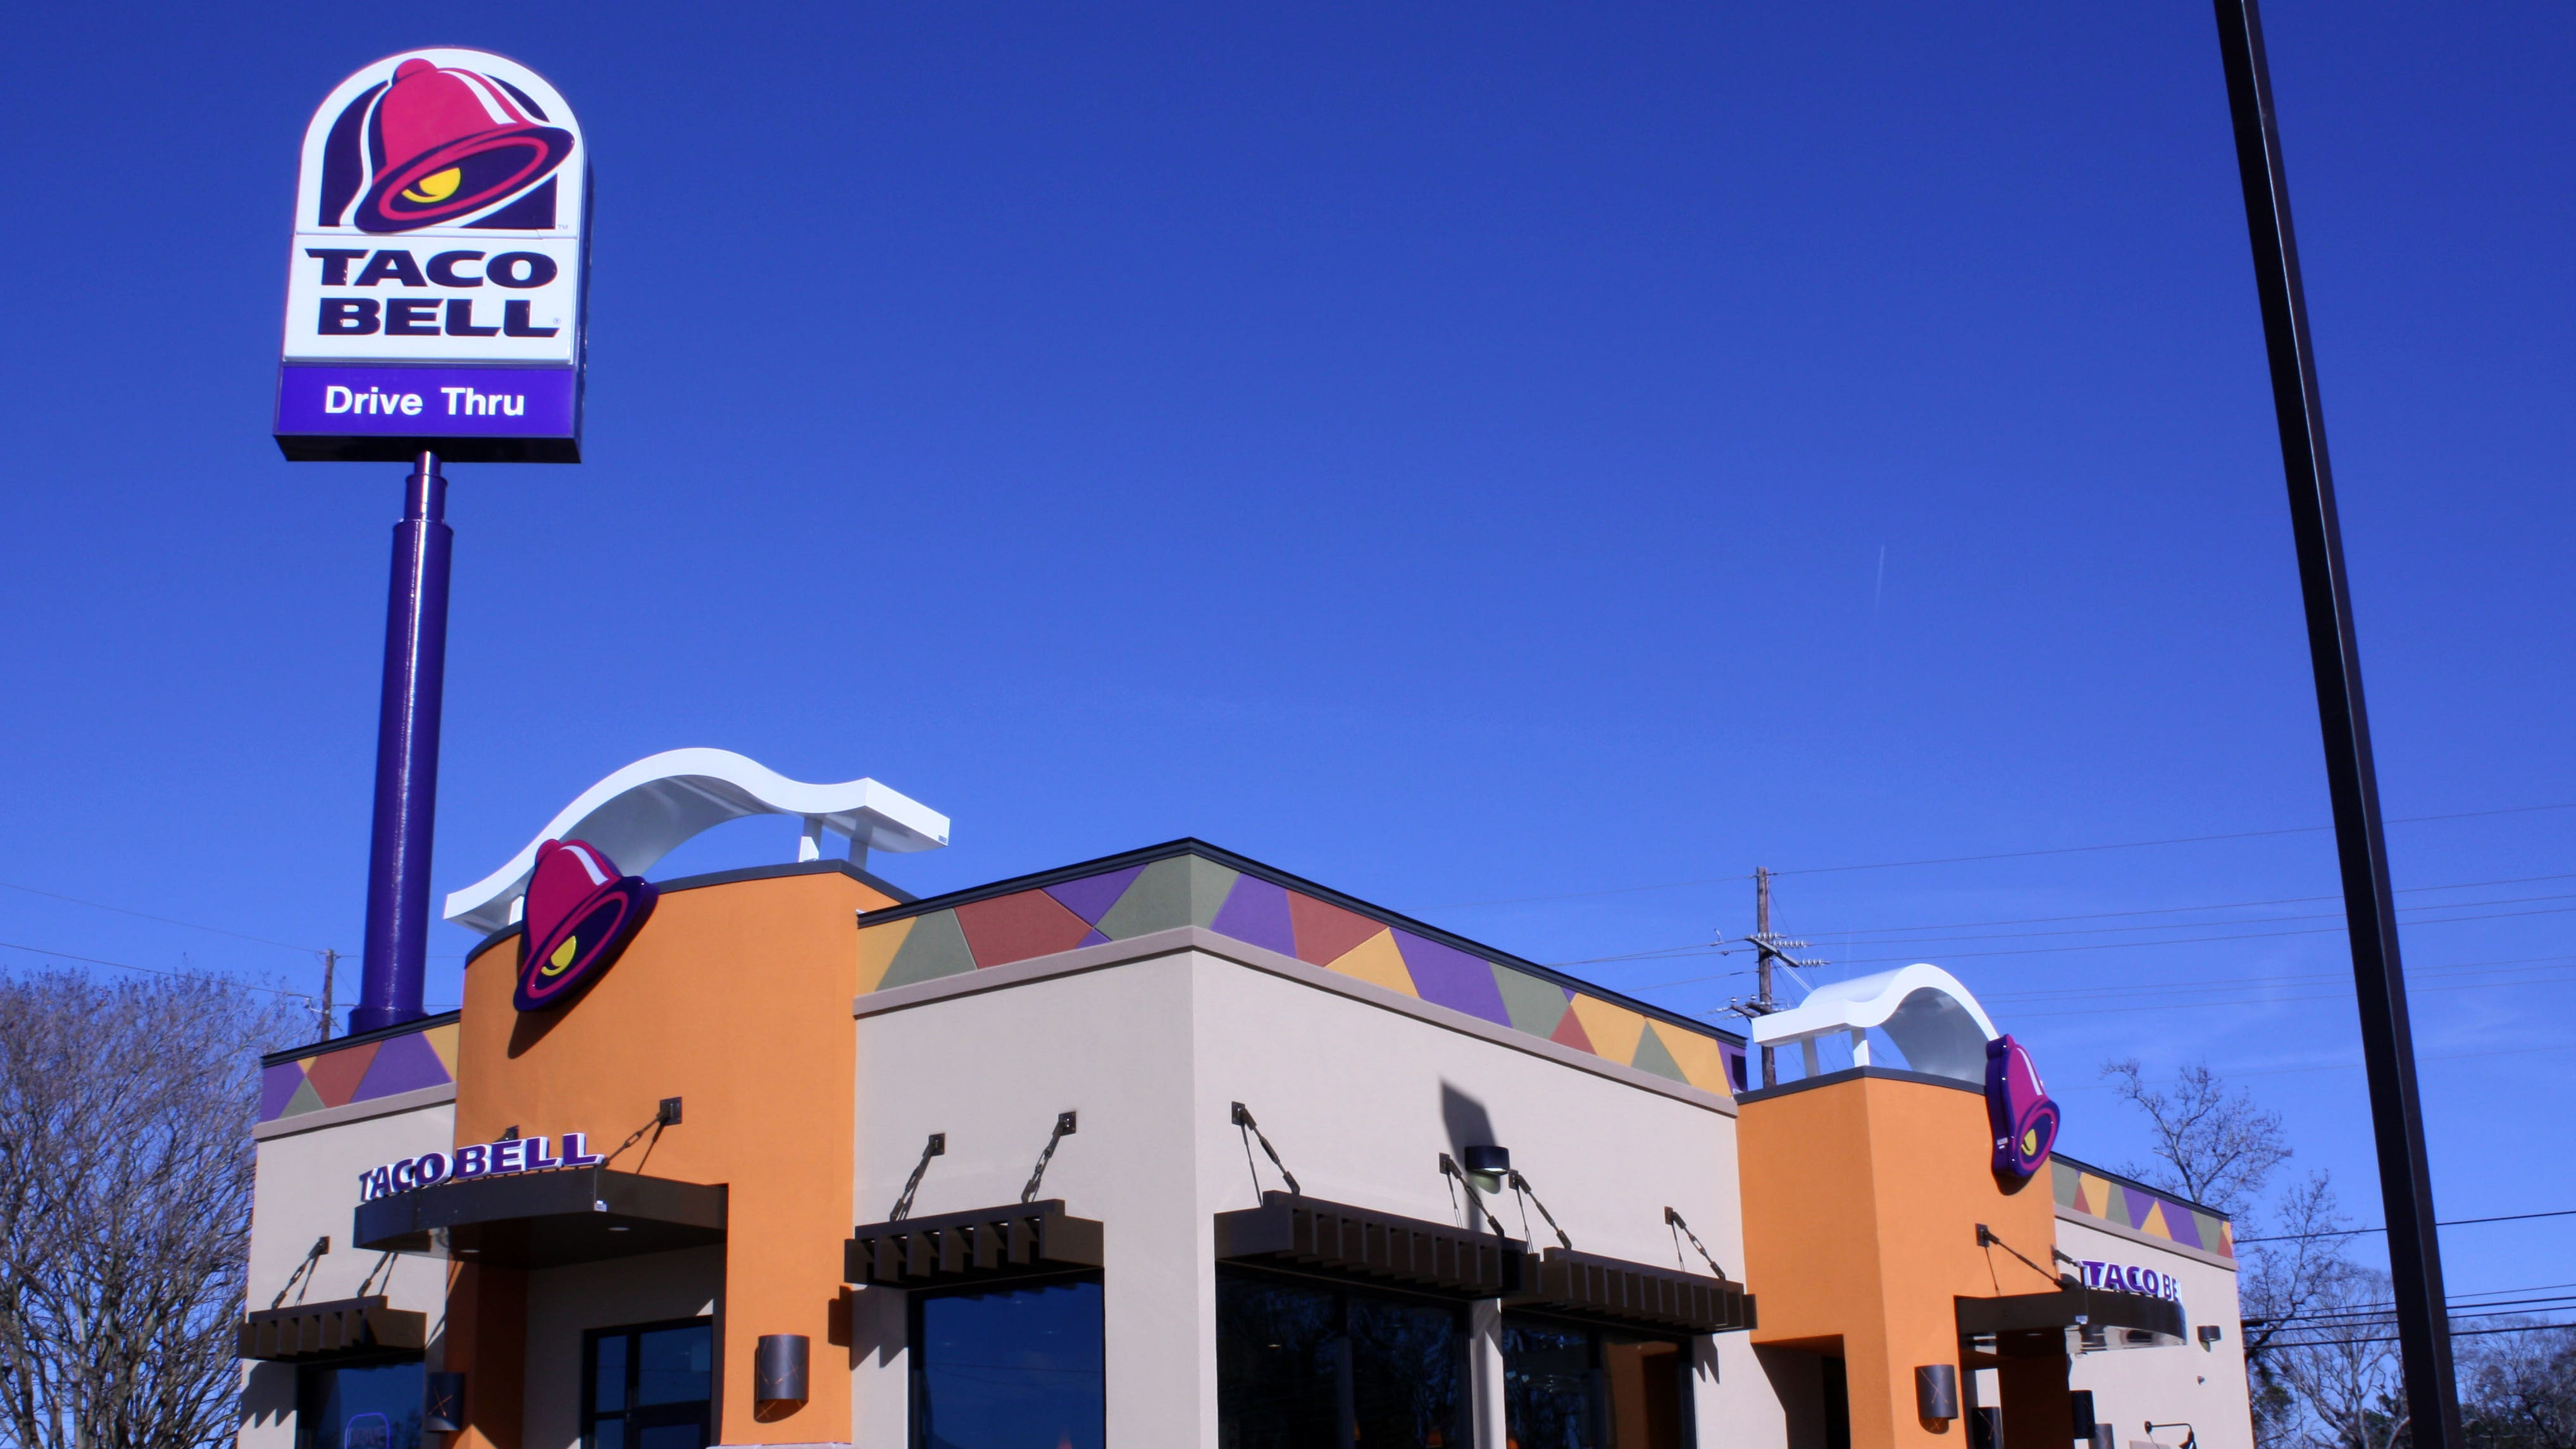 A new Taco Bell is under construction on Louisiana Highway 28 East in Pineville, joining  this current one on Monroe Highway.